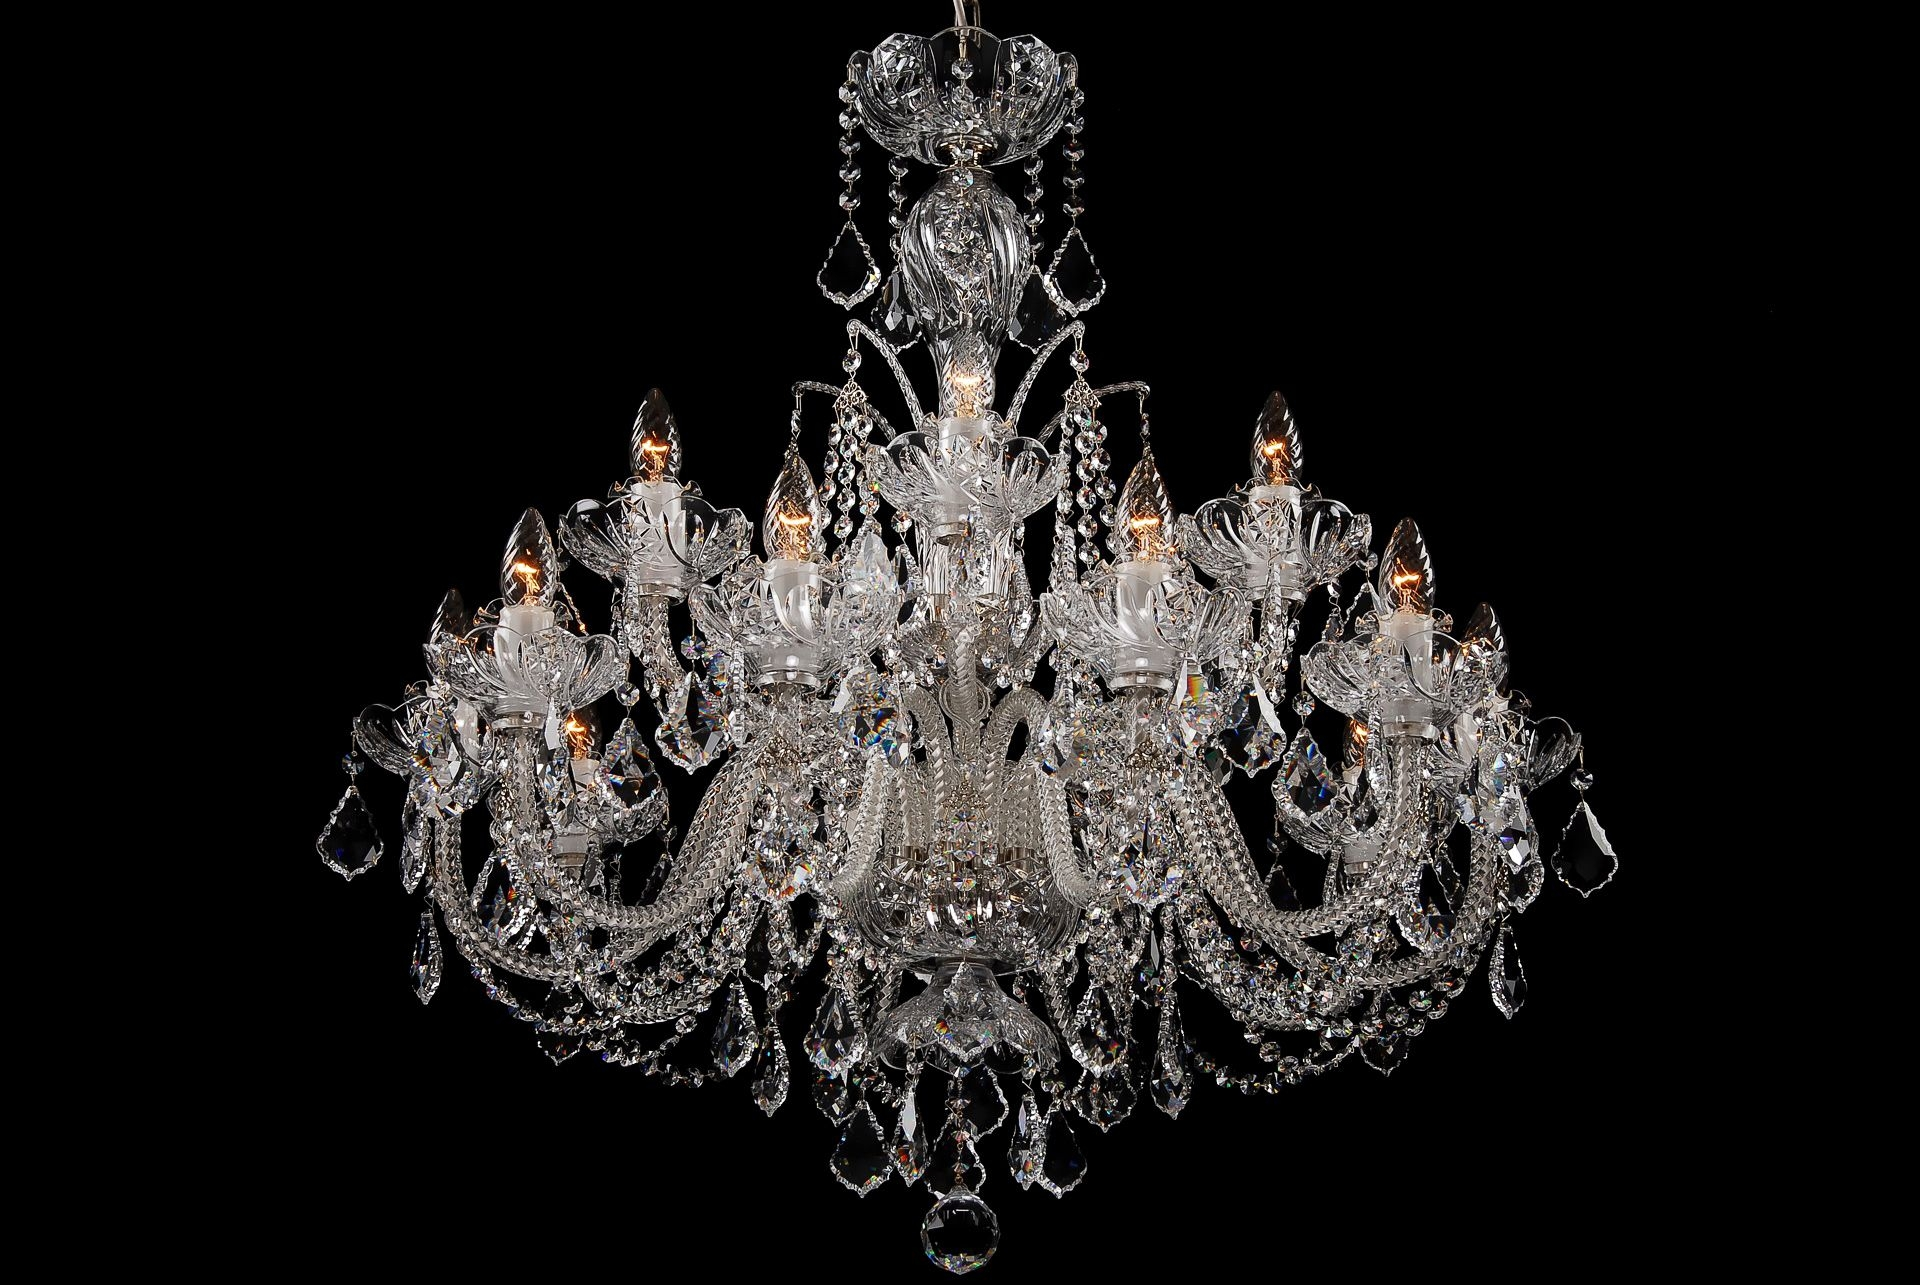 Luxury Home Designs European Luxury Chandeliers Gold Crystal Pertaining To Crystal Gold Chandeliers (Image 20 of 25)